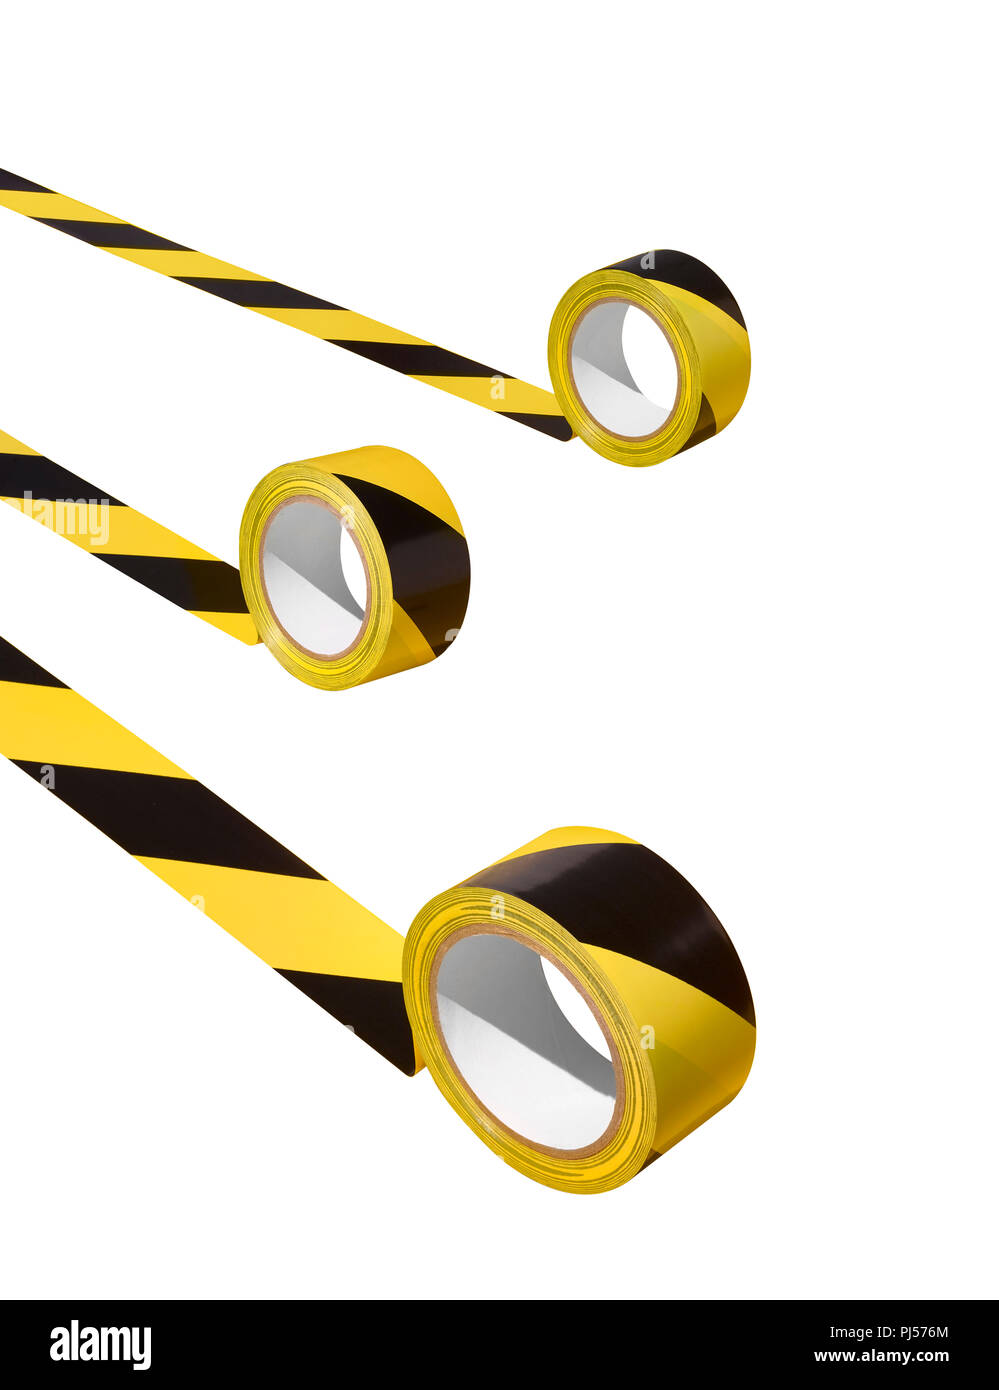 Three unraveling rolls of hazard tape Stock Photo